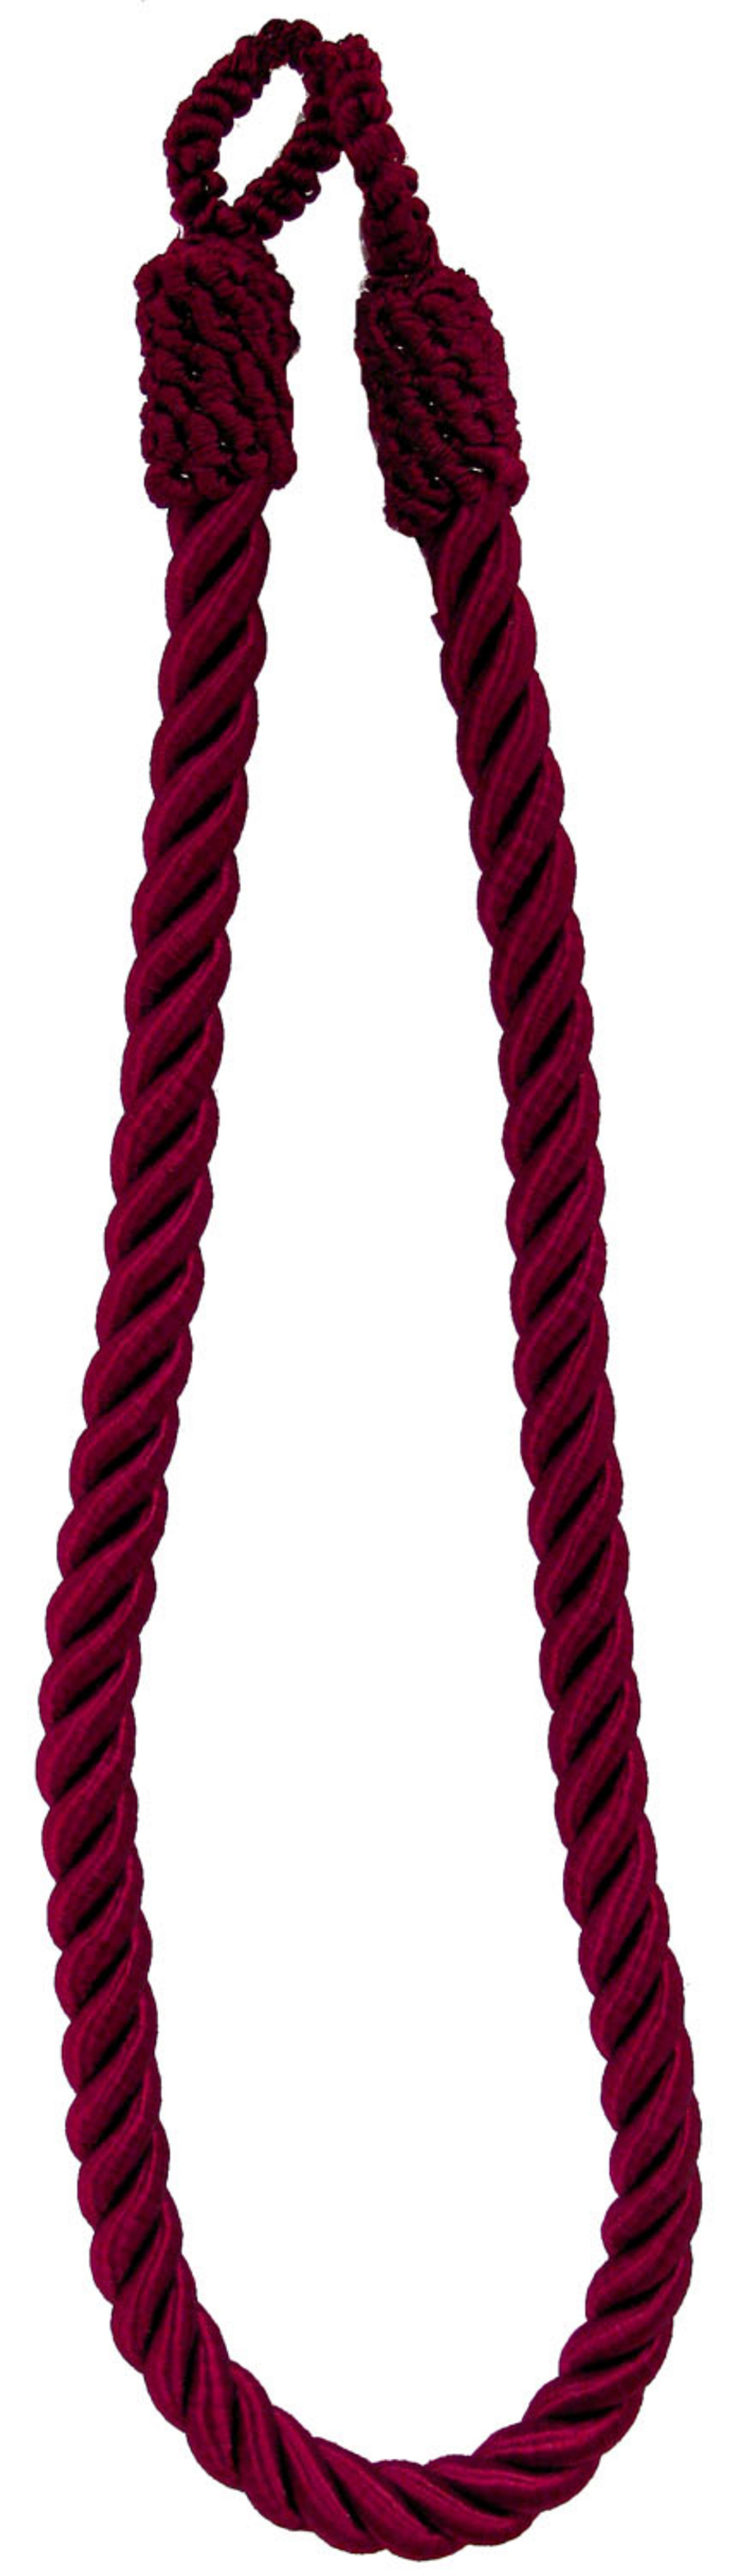 Ss 26in Wine Tieback Twisted 3-ply